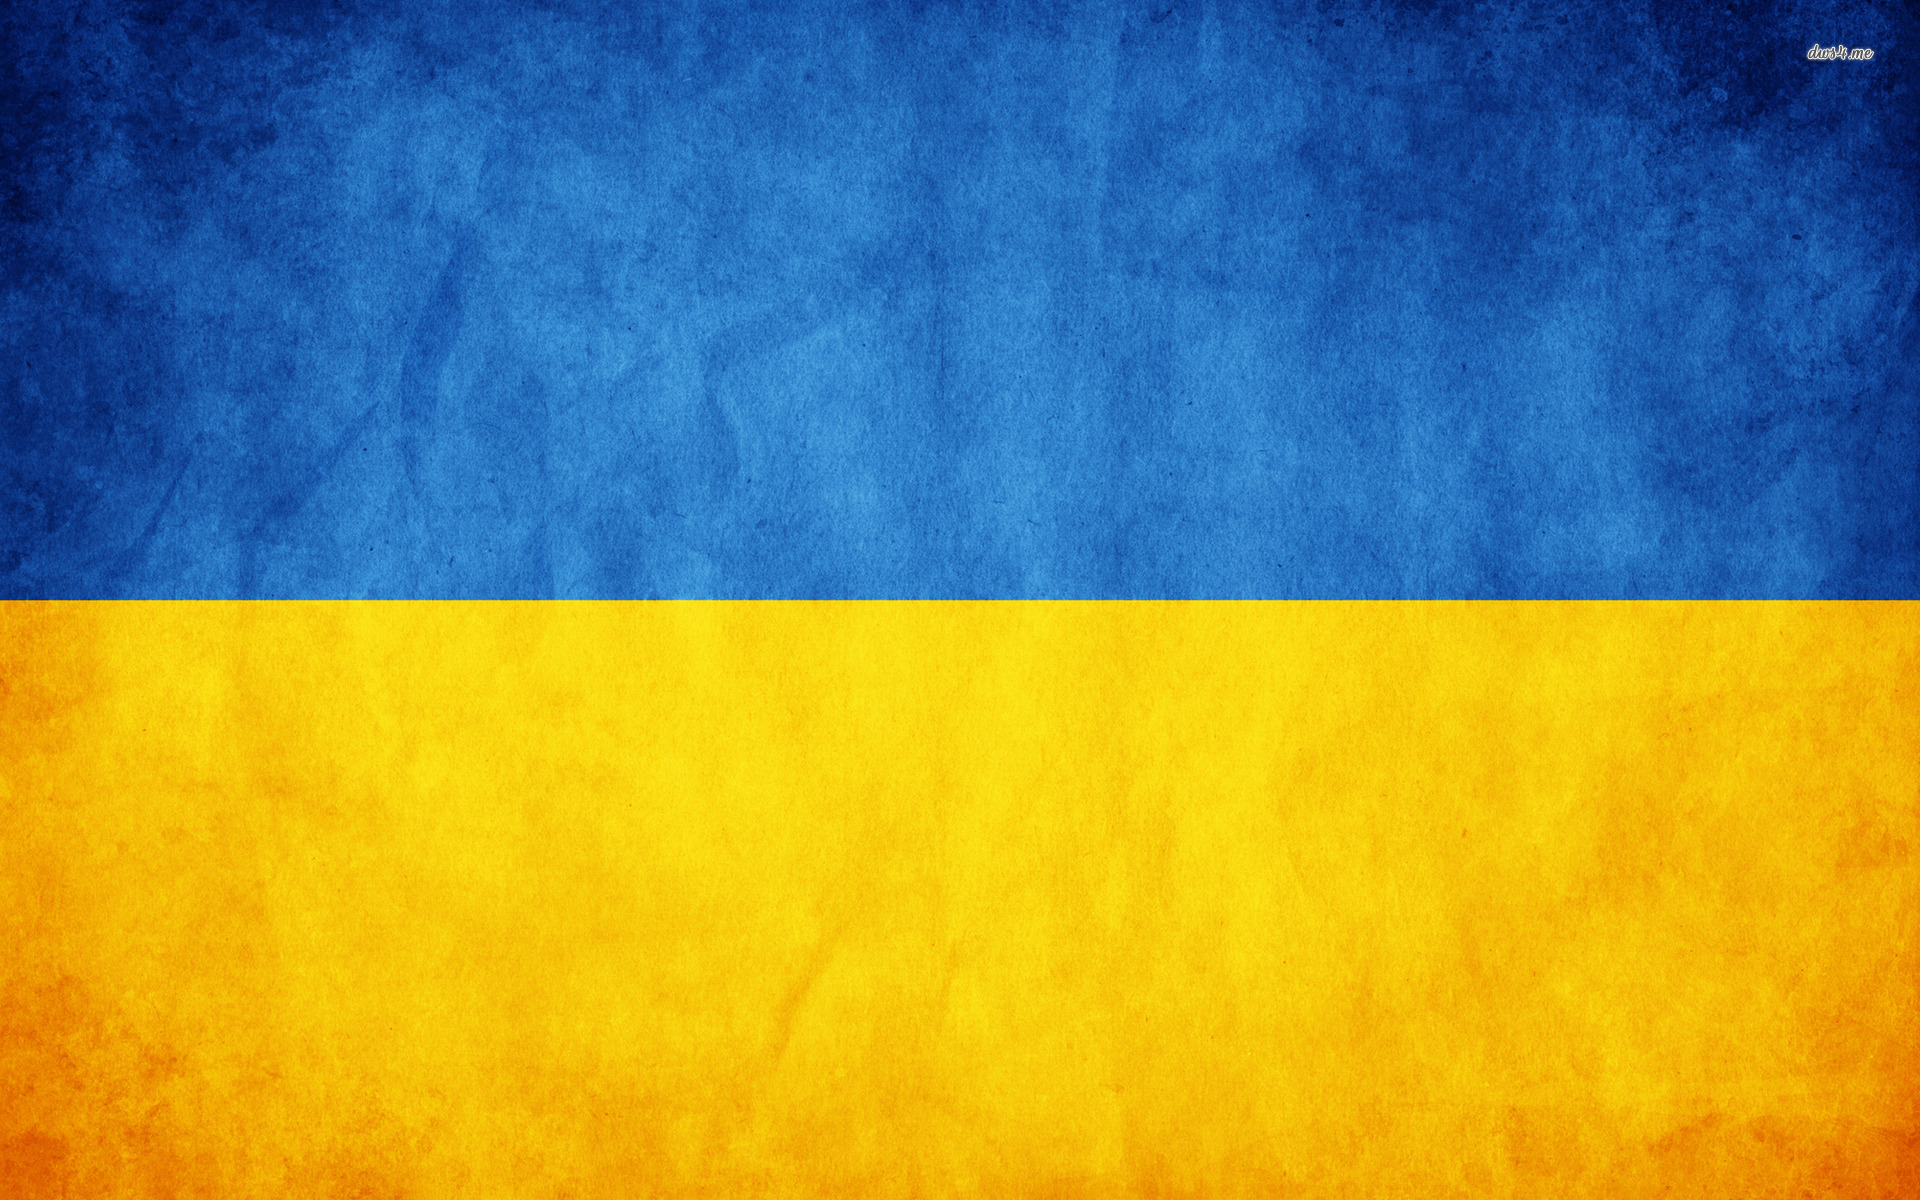 Ukraine Flag wallpaper